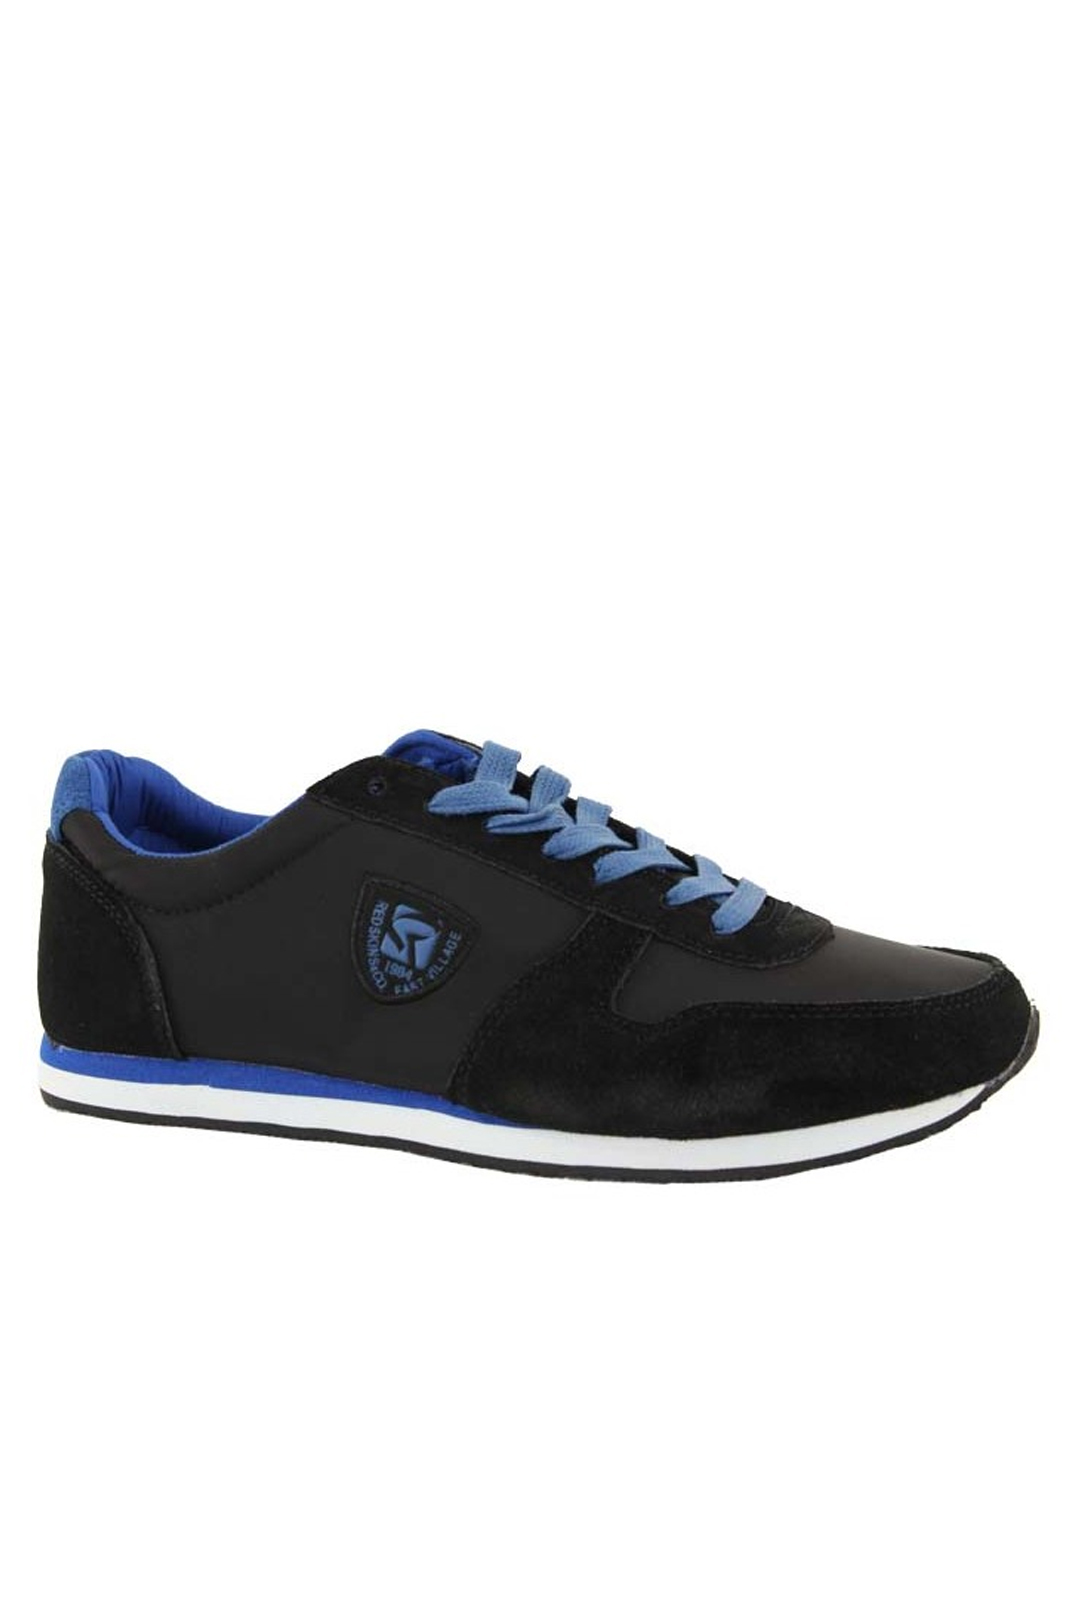 Baskets / Sport  Redskins DISCO NOIR/BLEU